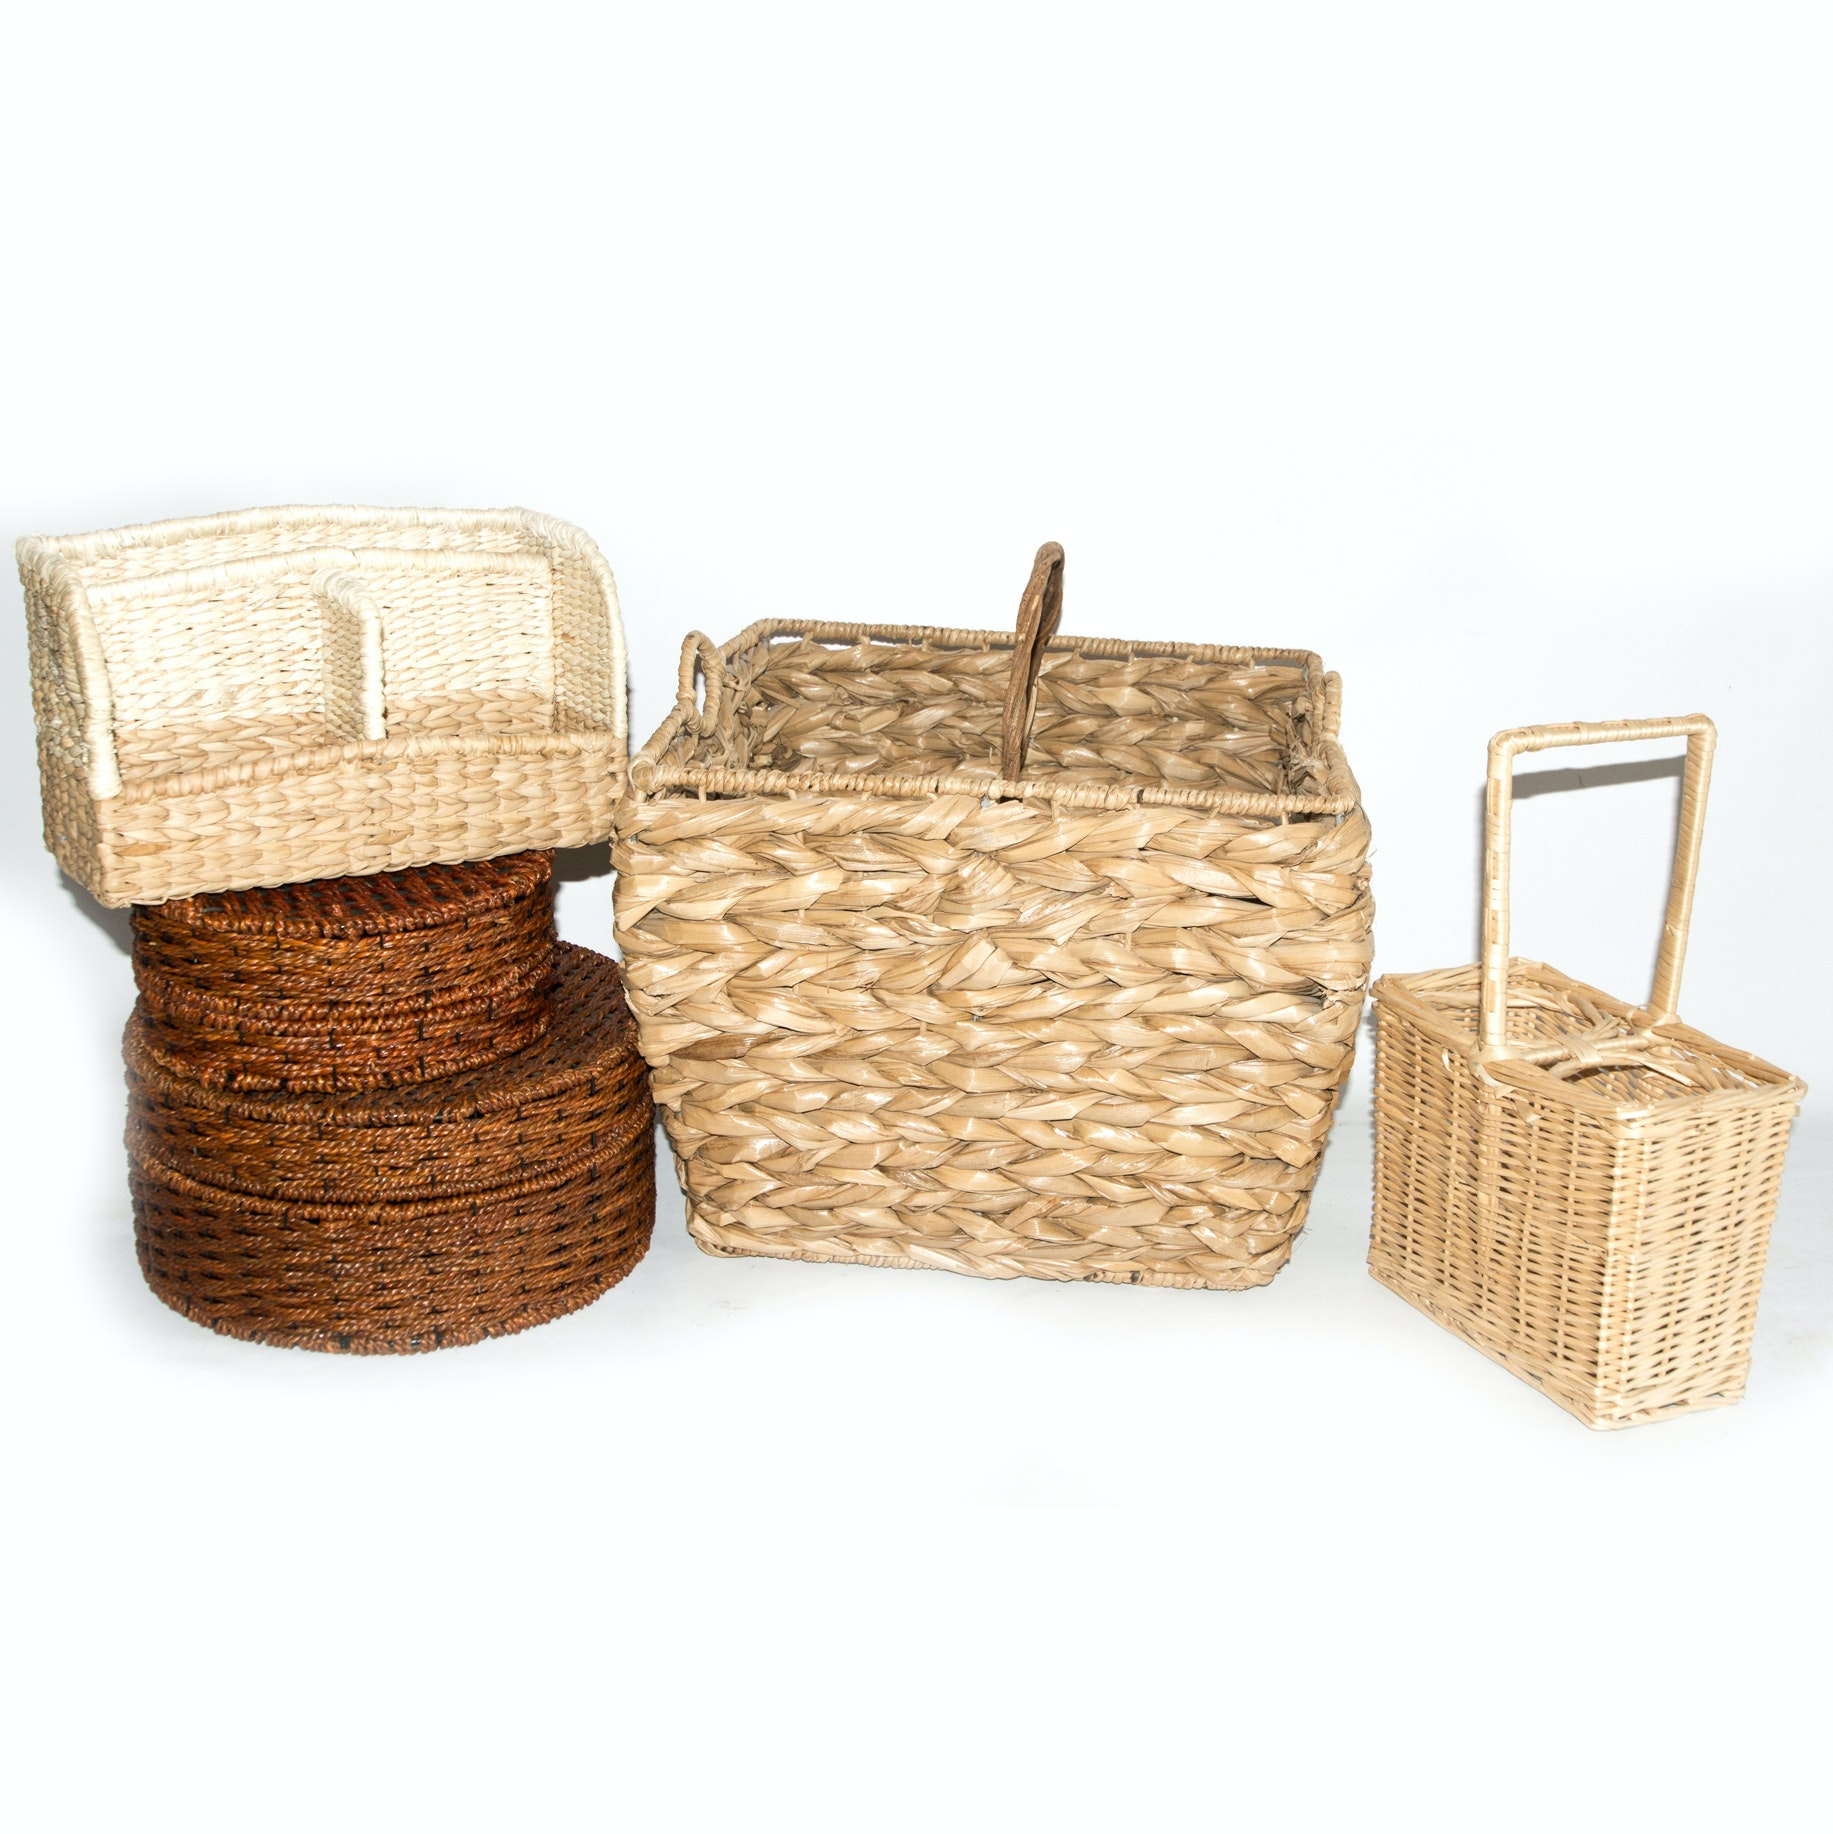 Assortment of Wicker Baskets